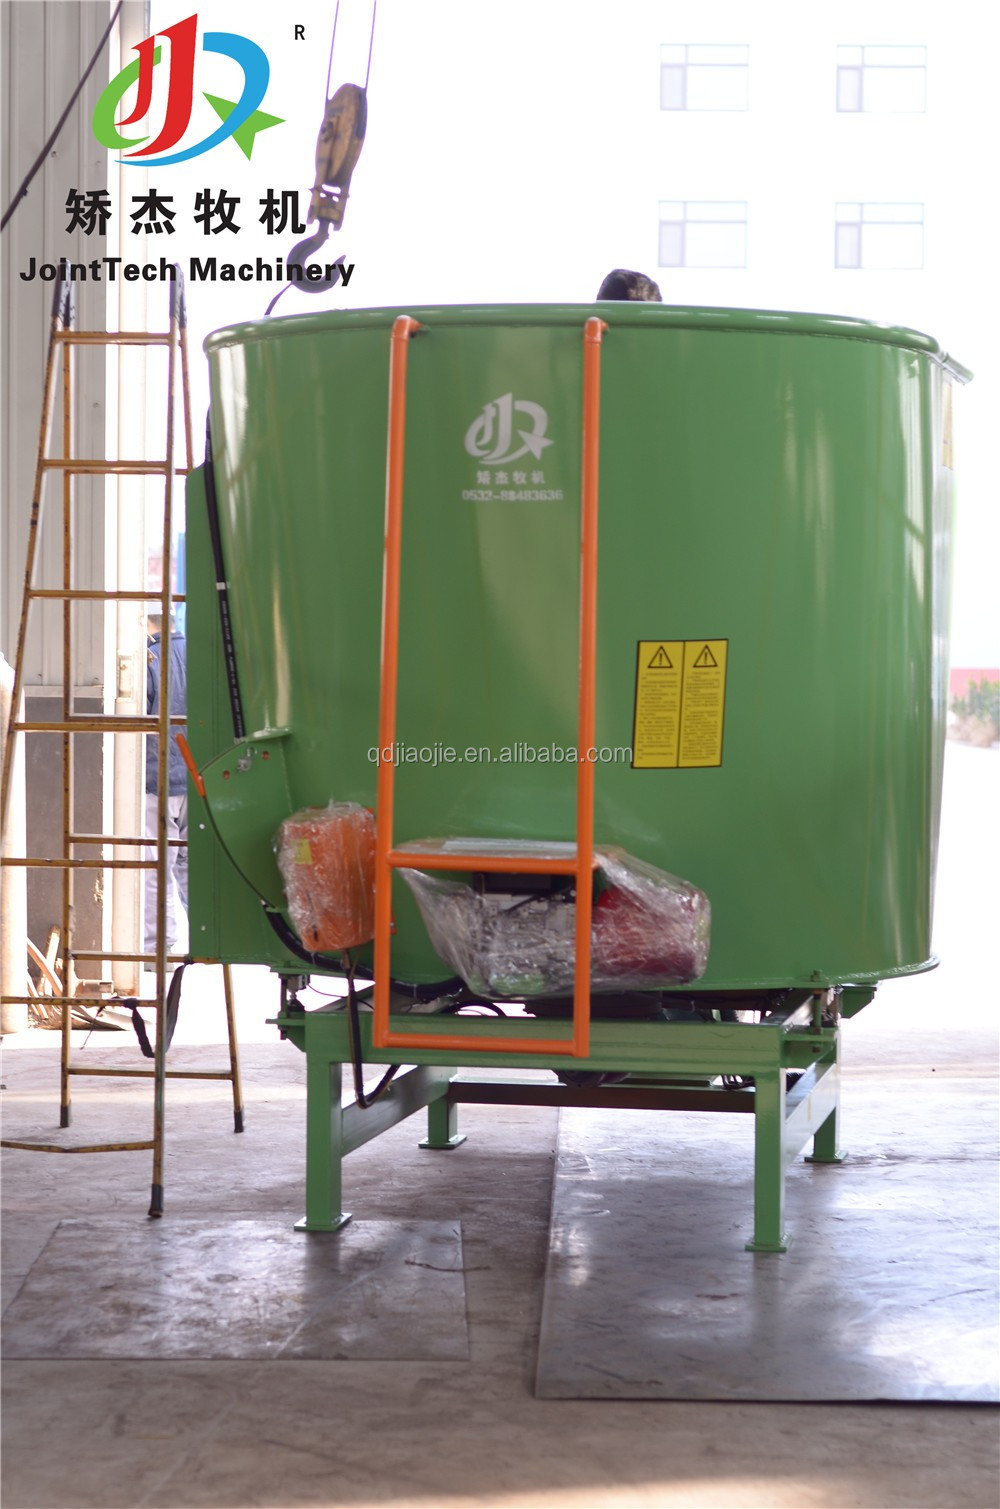 Manganese Steel Stationary Feed Mixer For Sale Horizontal Feed Mixers! -  Buy Horizontal Feed Mixer,Electric Feed Mixer,Feed Mixer For Sale Product  on